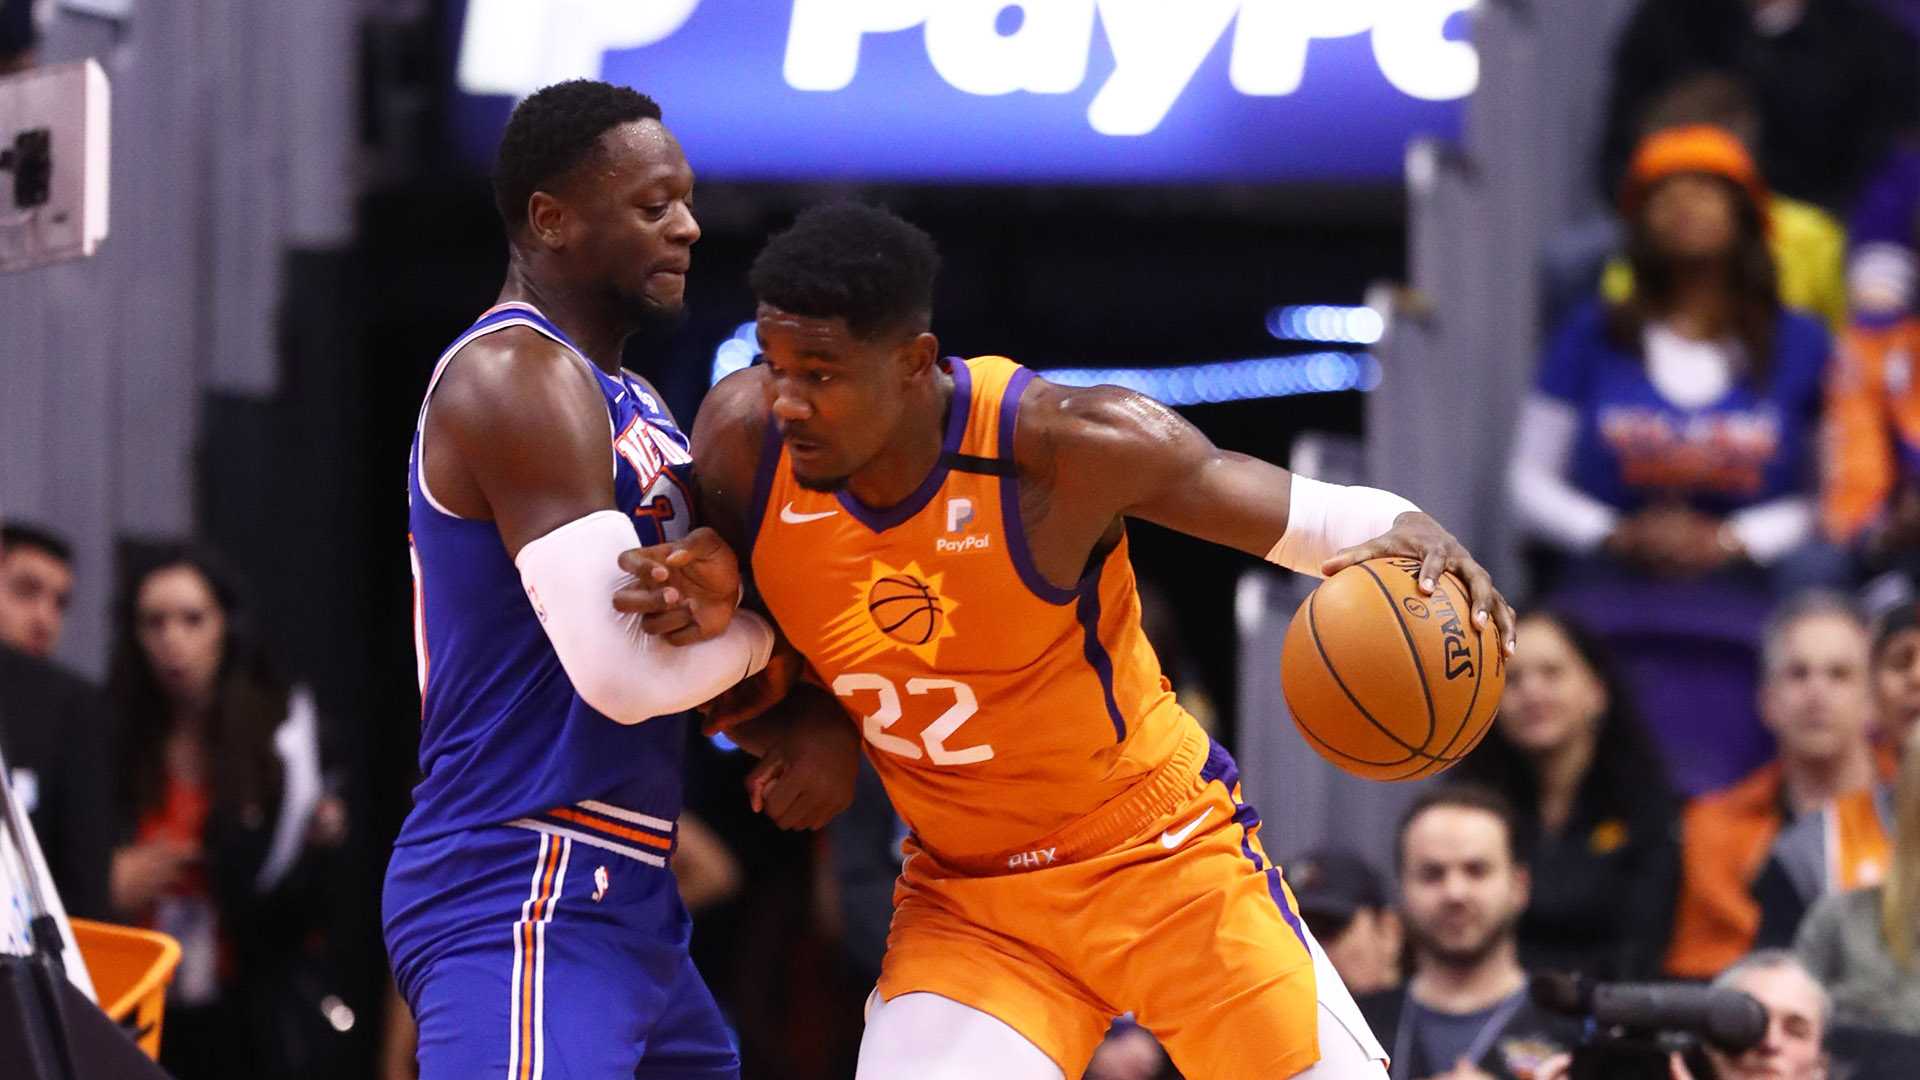 Playoff implications hover over Knicks, Suns matchup